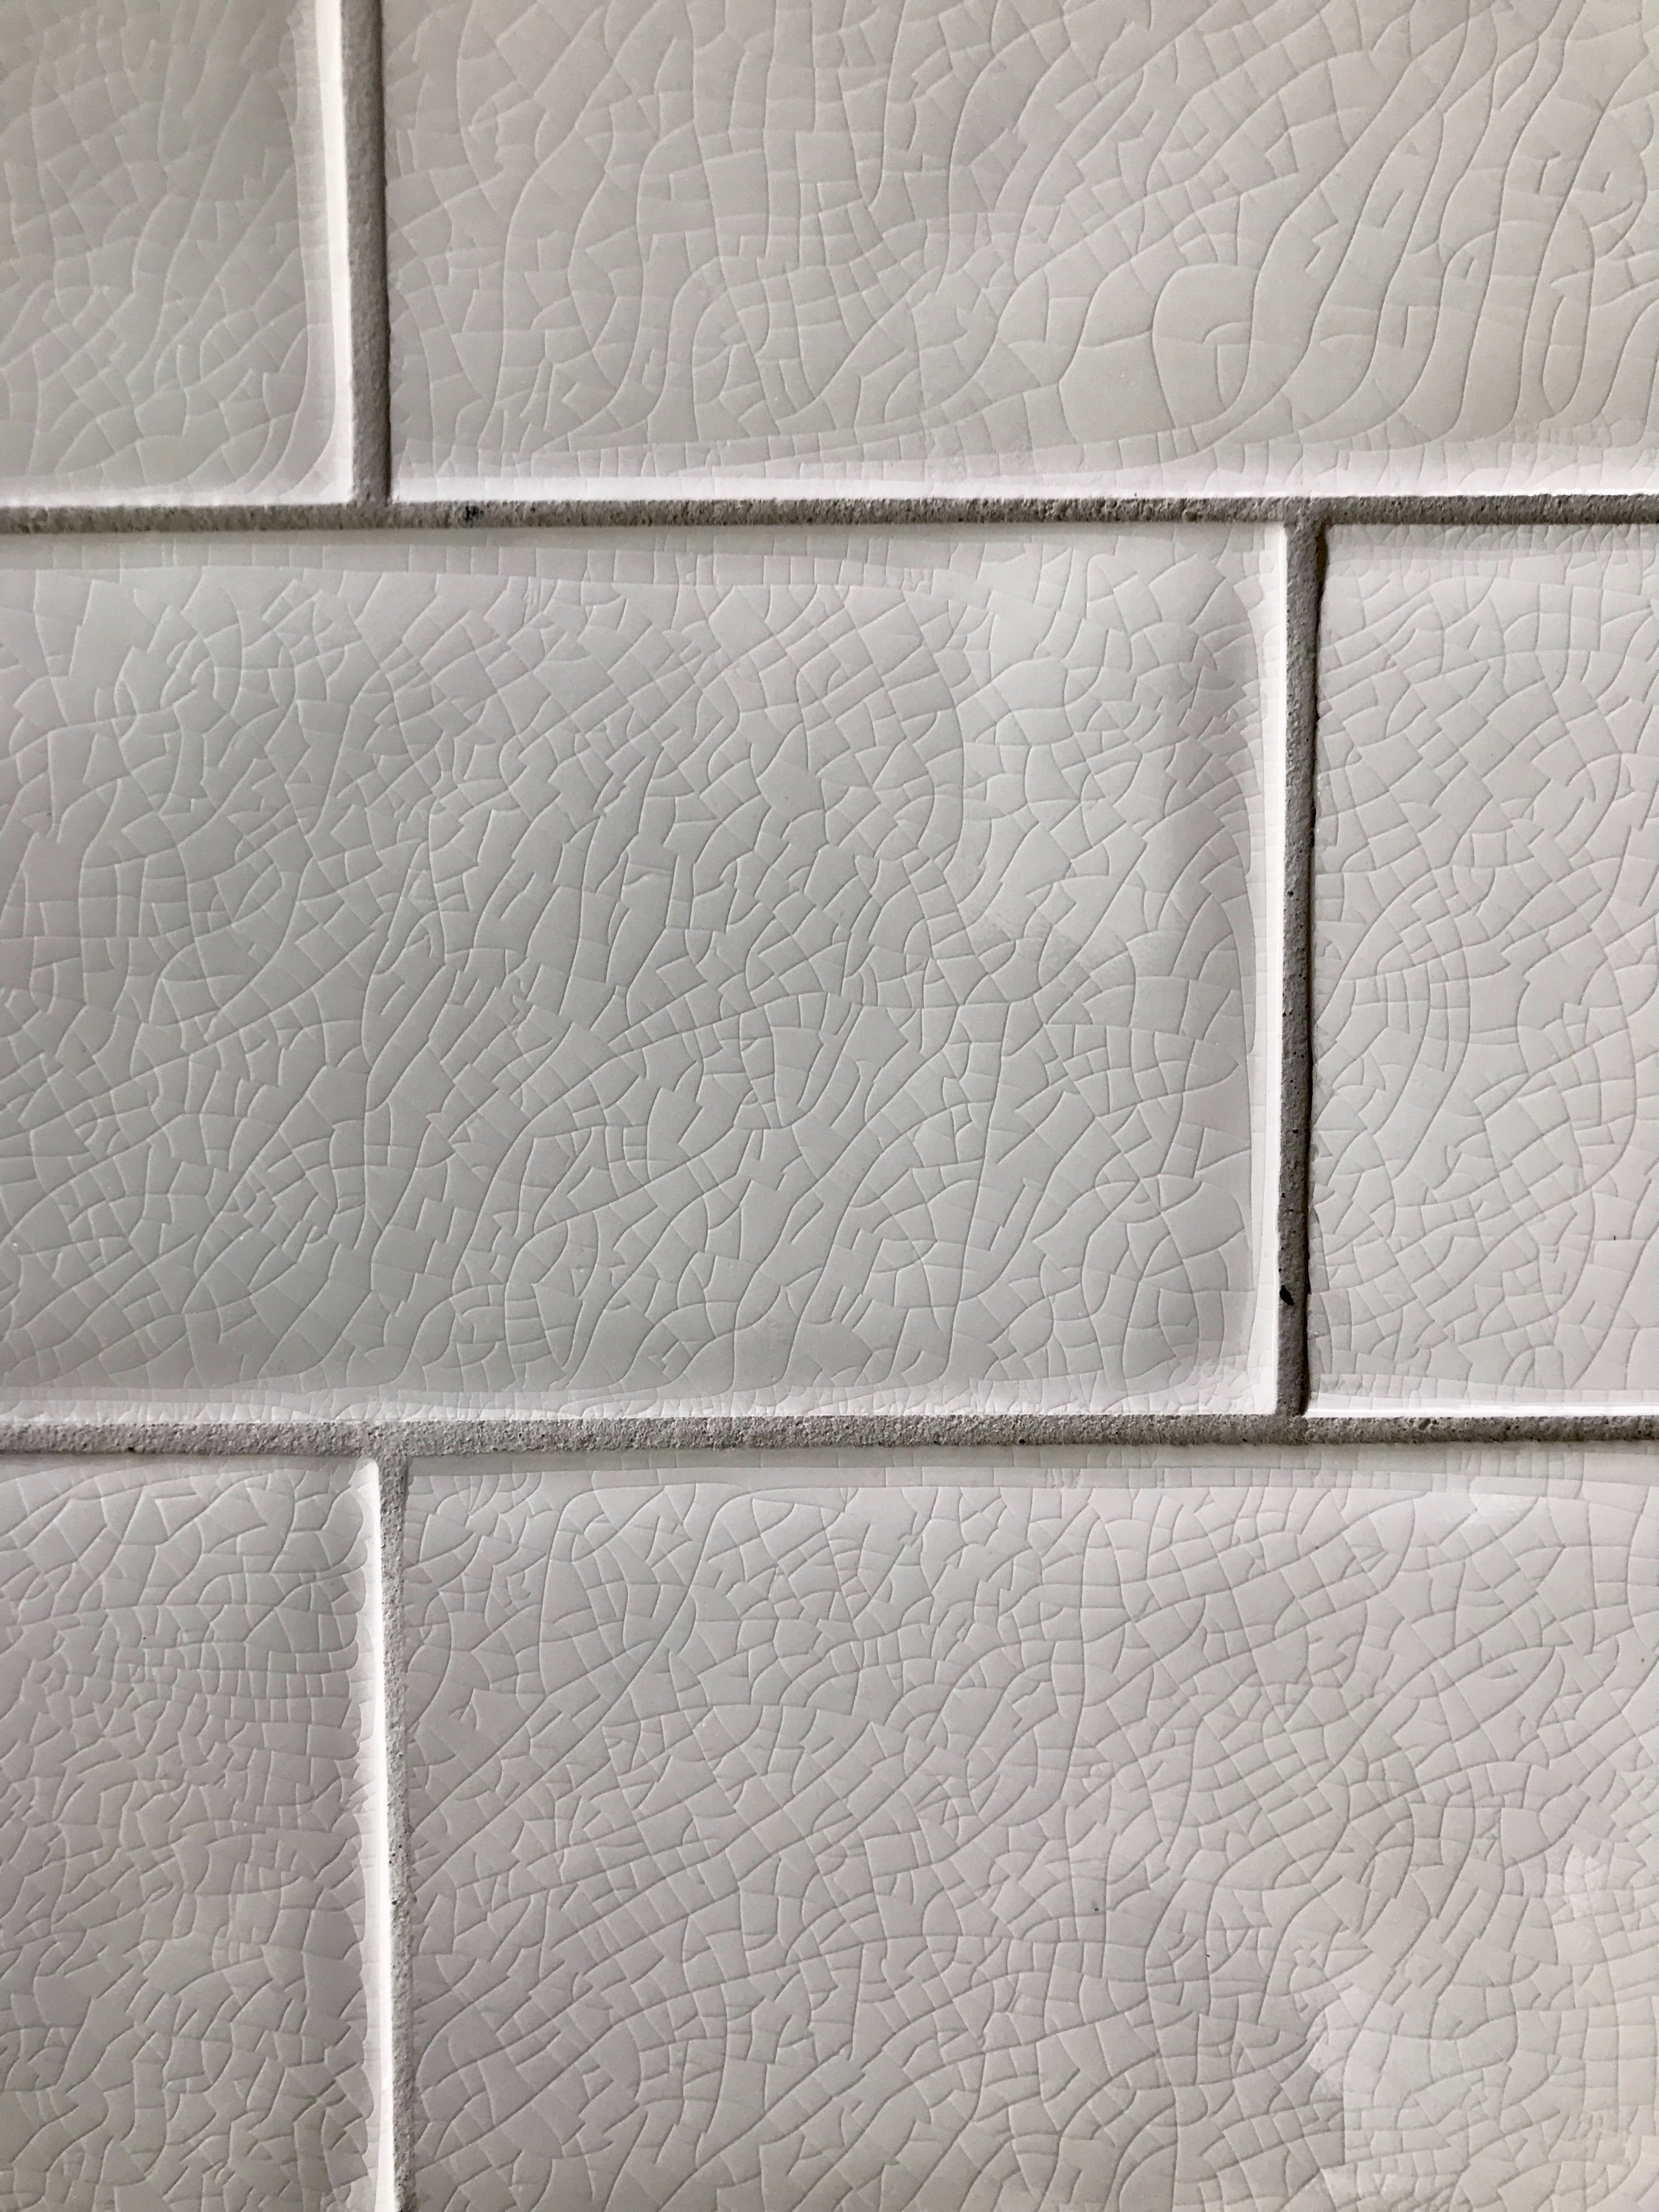 Subway wall tile details, love the crackling!